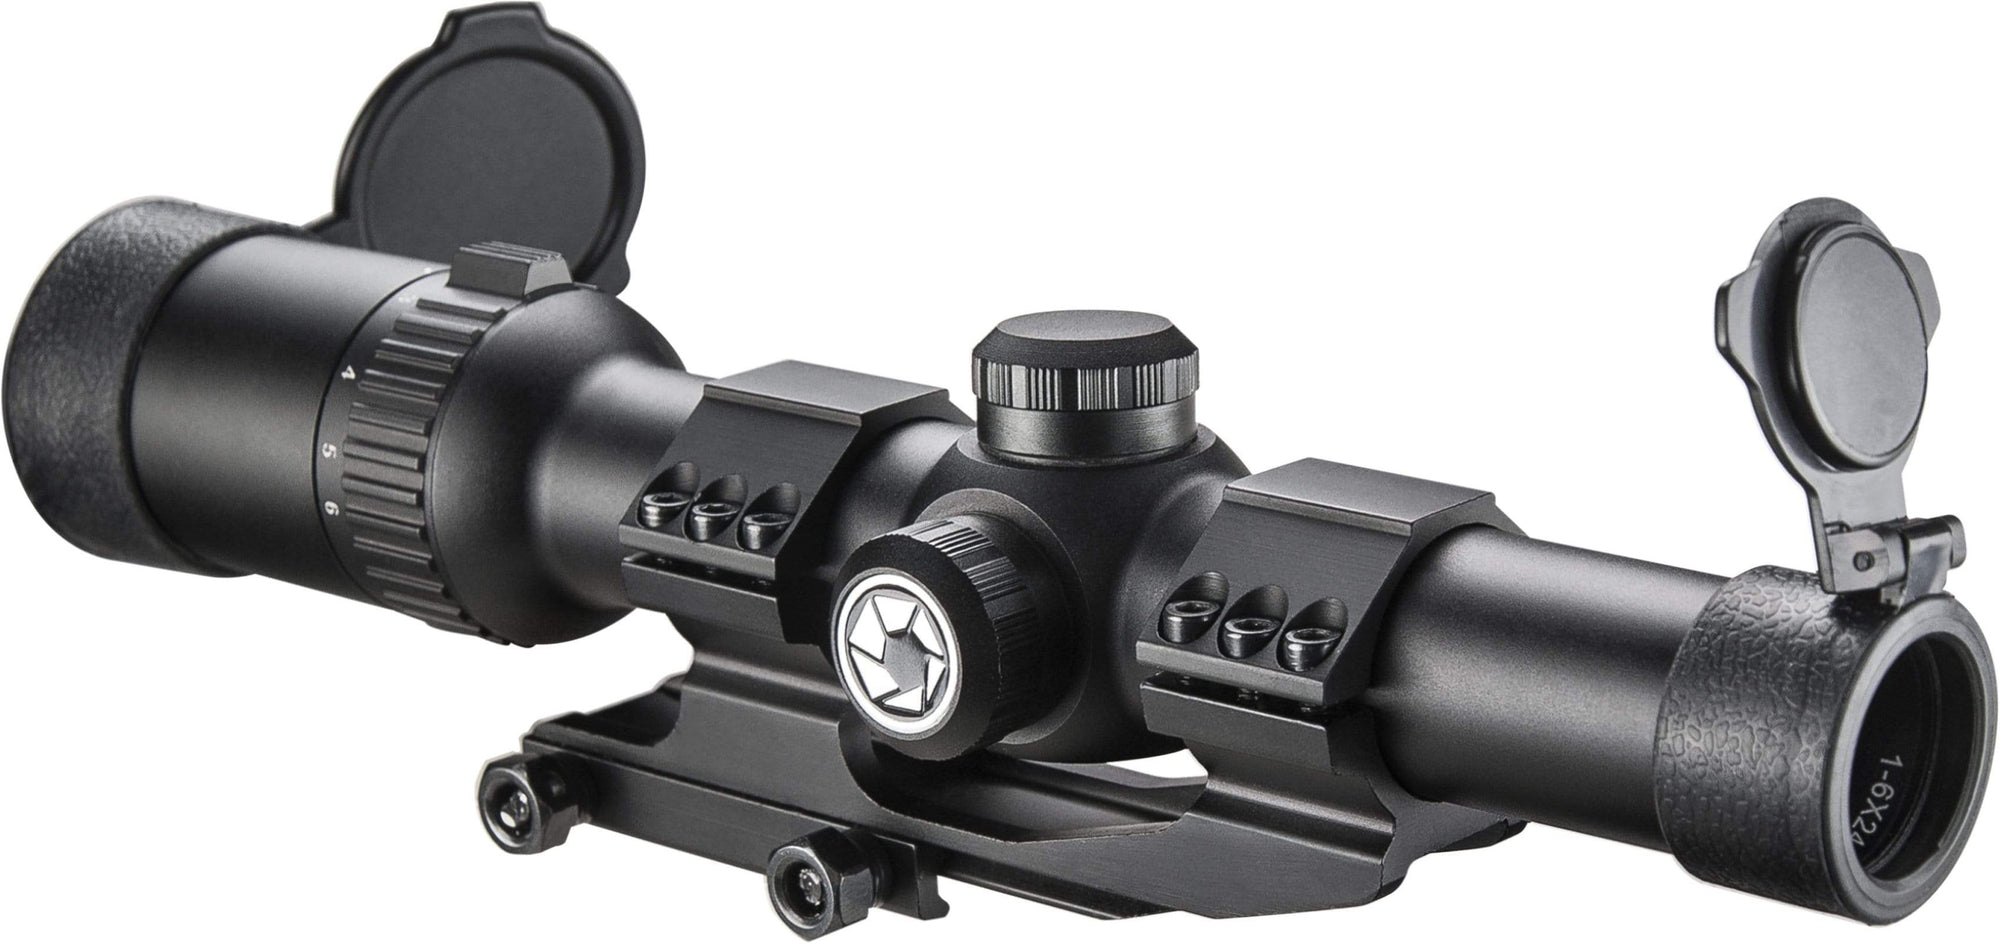 Barska 1-6 x 24mm IR AR6 Tactical Rifle Scope Armadillo Safe and Vault